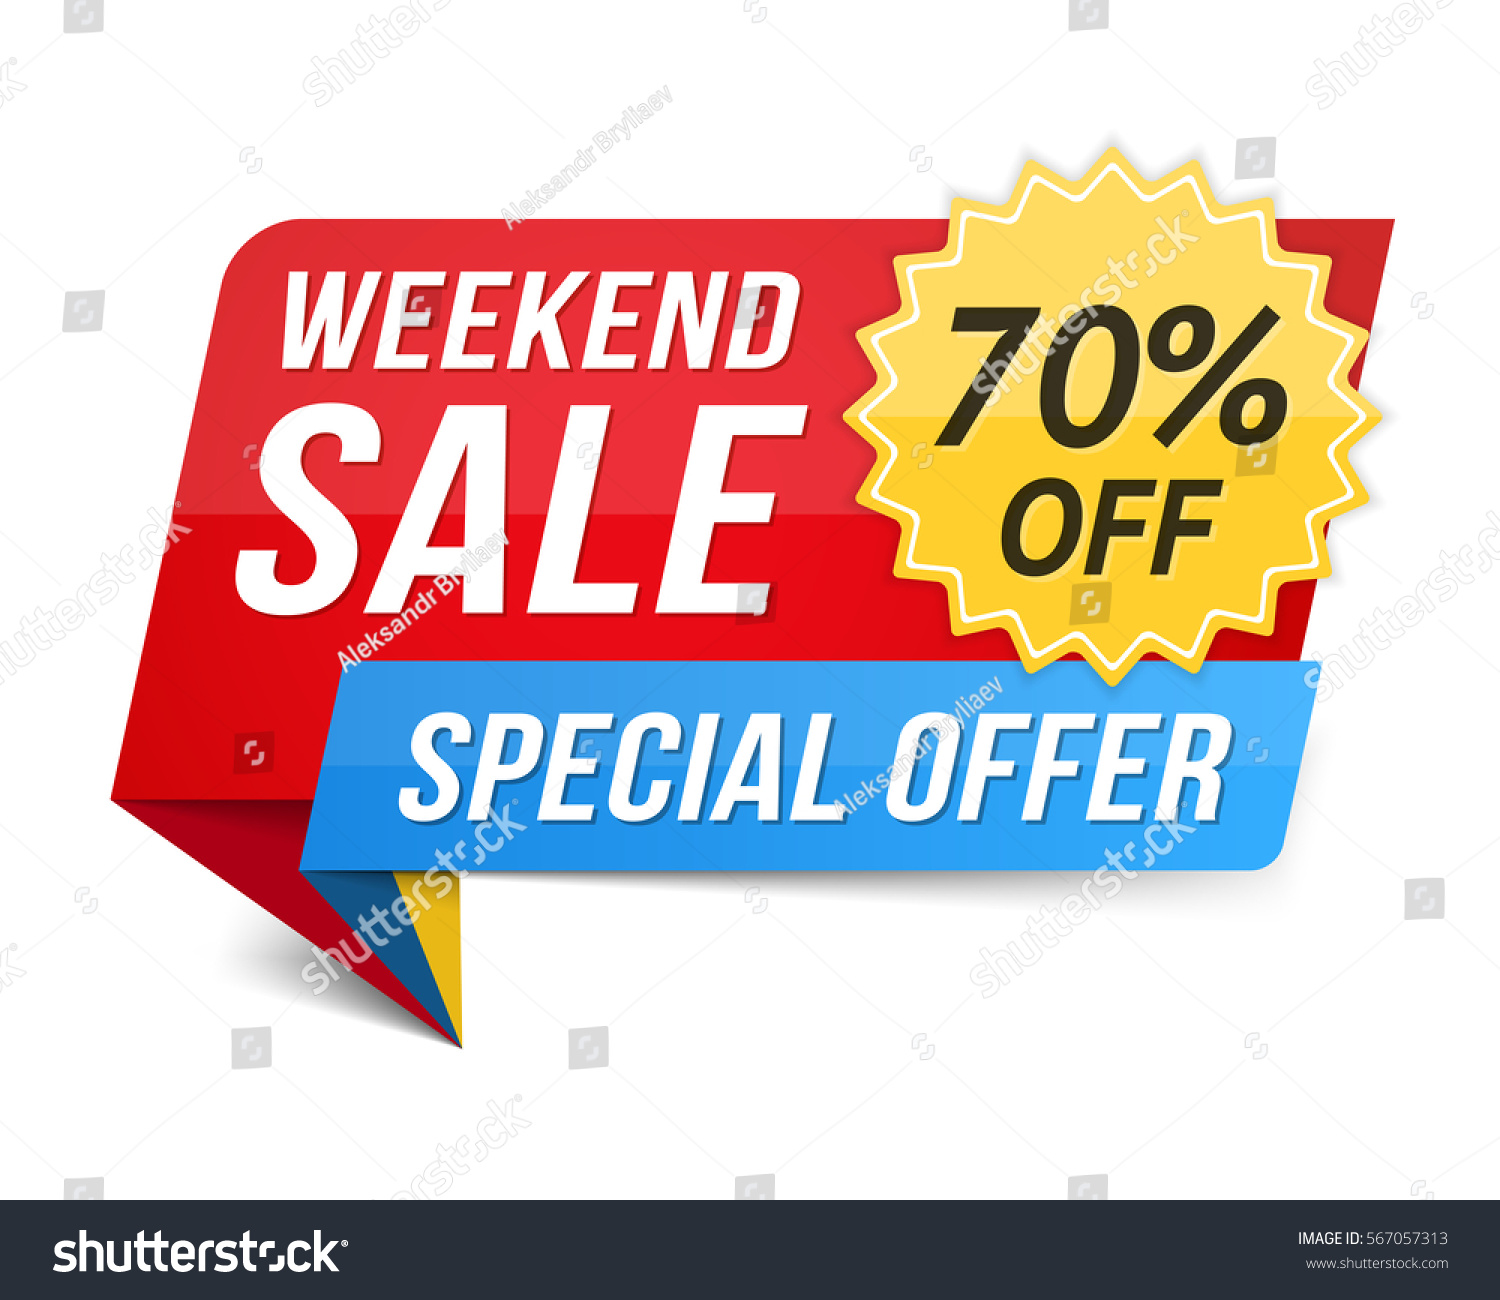 Weekend Sale Banner: Weekend Sale Banner Special Offer 70 Stock Vector